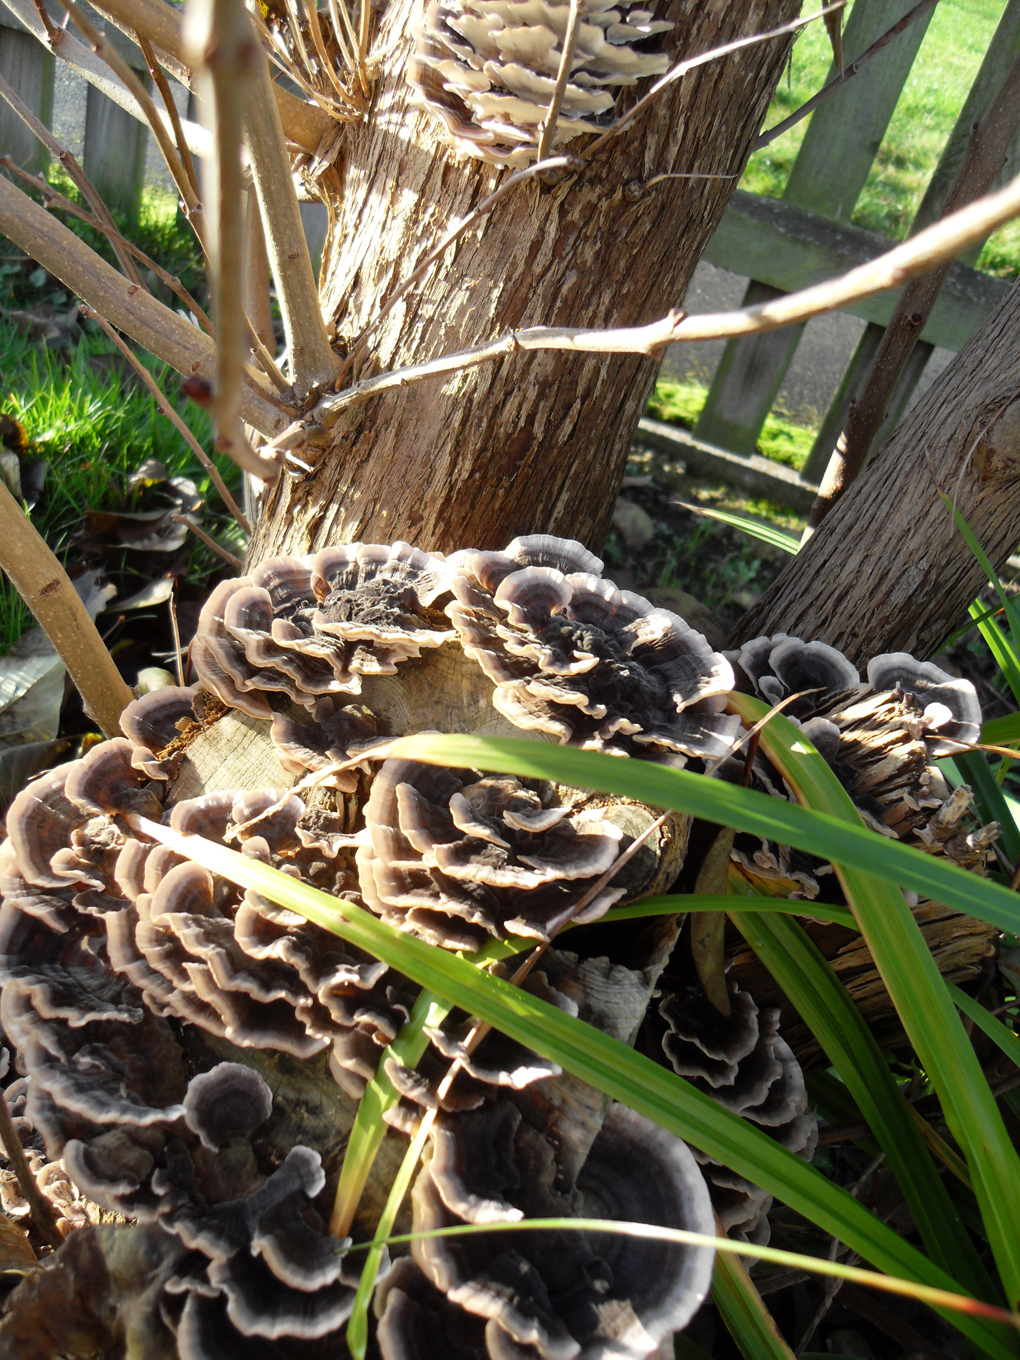 Group of frilly brown and beige fungi growing on stems of a bush.